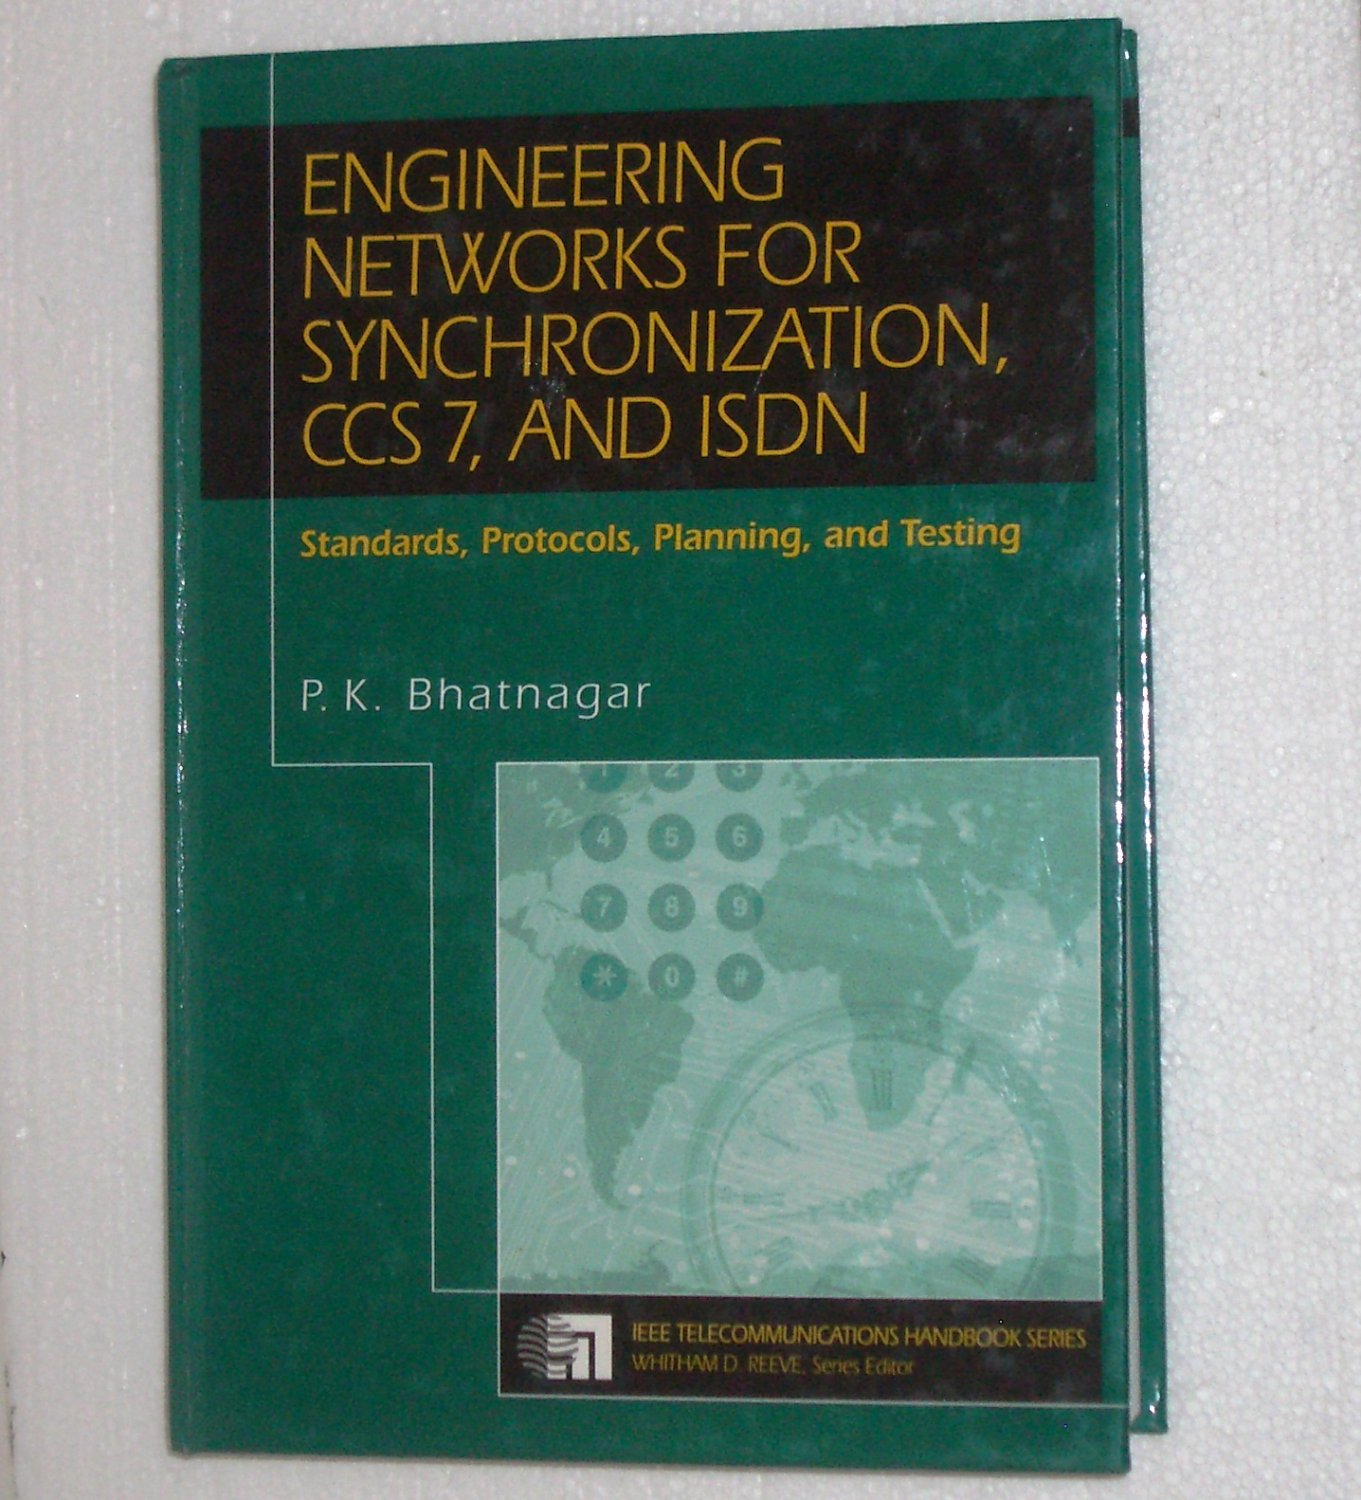 Engineering Networks for Synchronization, CCS 7, and ISDN by P.K. Bhatnagar Hardback 1997